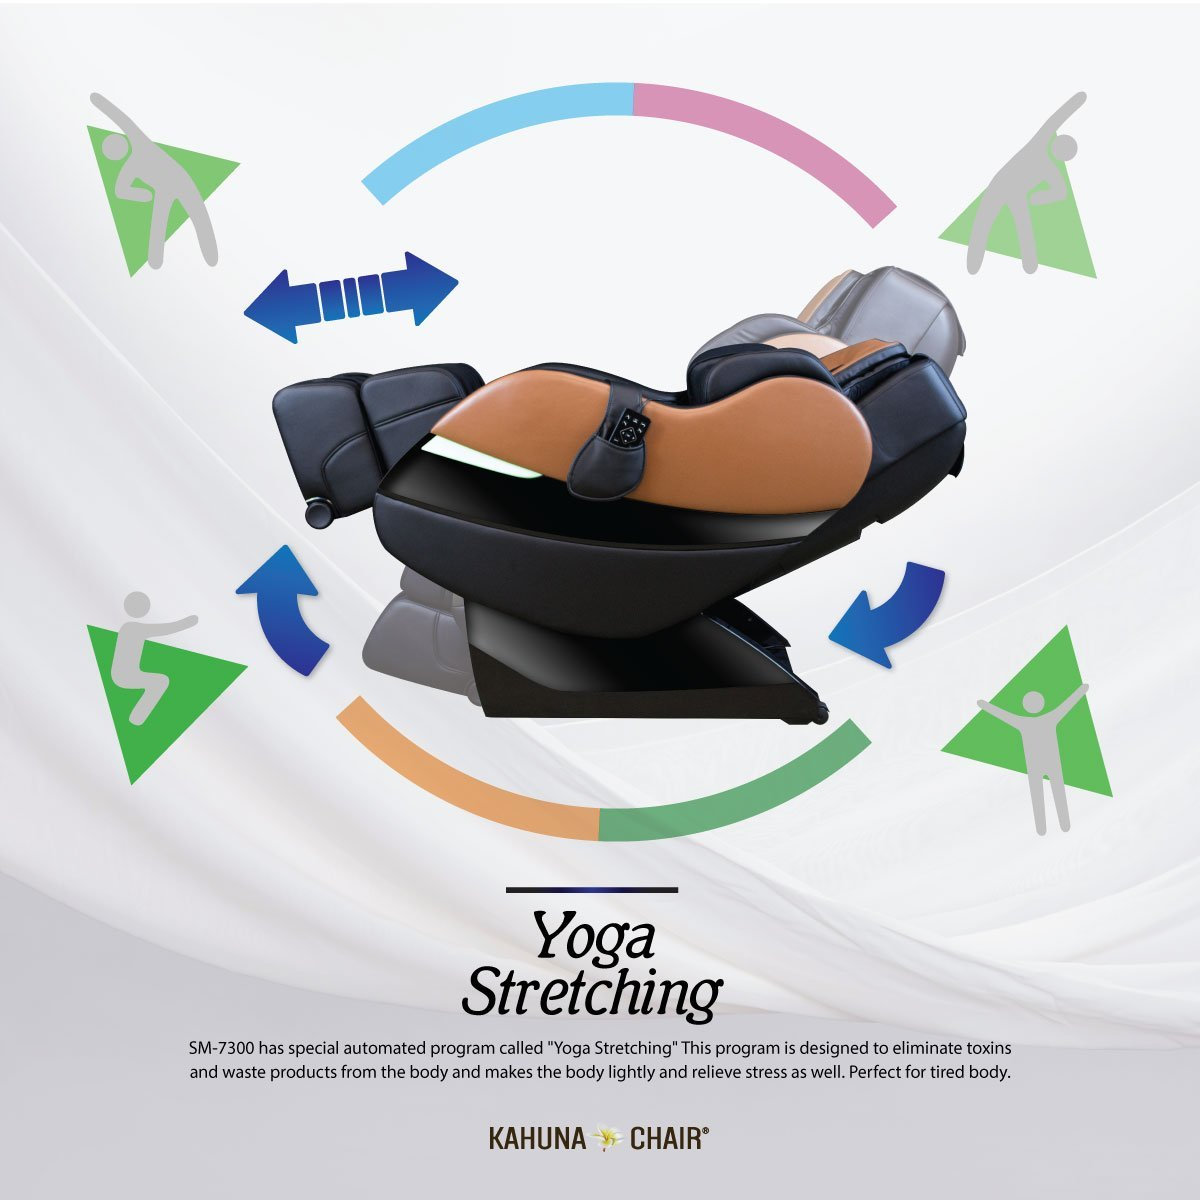 Kahuna SM7300 Yoga Stretching - Kahuna Massage Chair Reviews